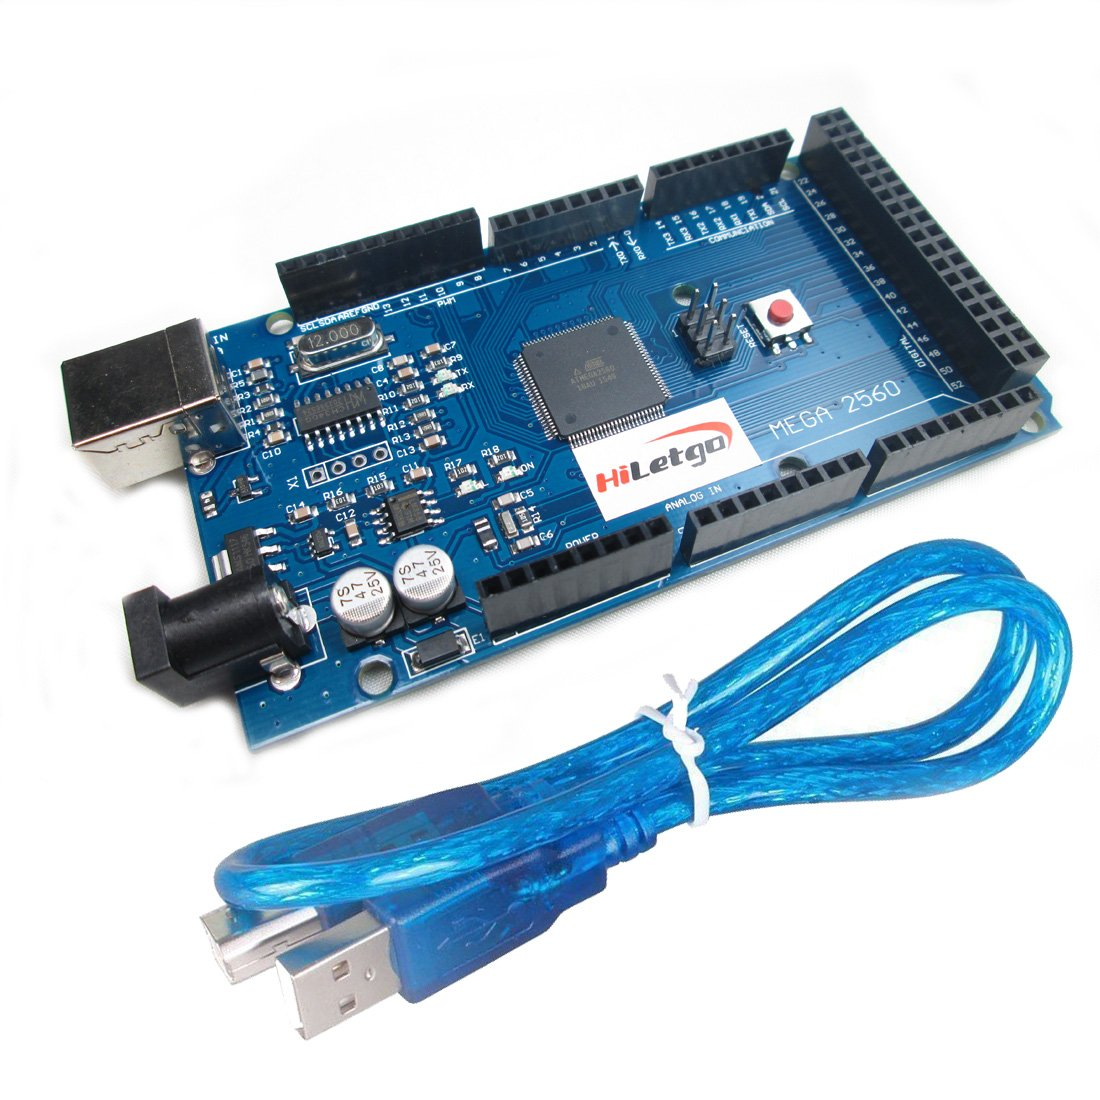 HiLetgo Mega2560 R3 ATMEGA16U2 CH340 Microcontroller Board Development Board Compatible to Arduino With USB Cable